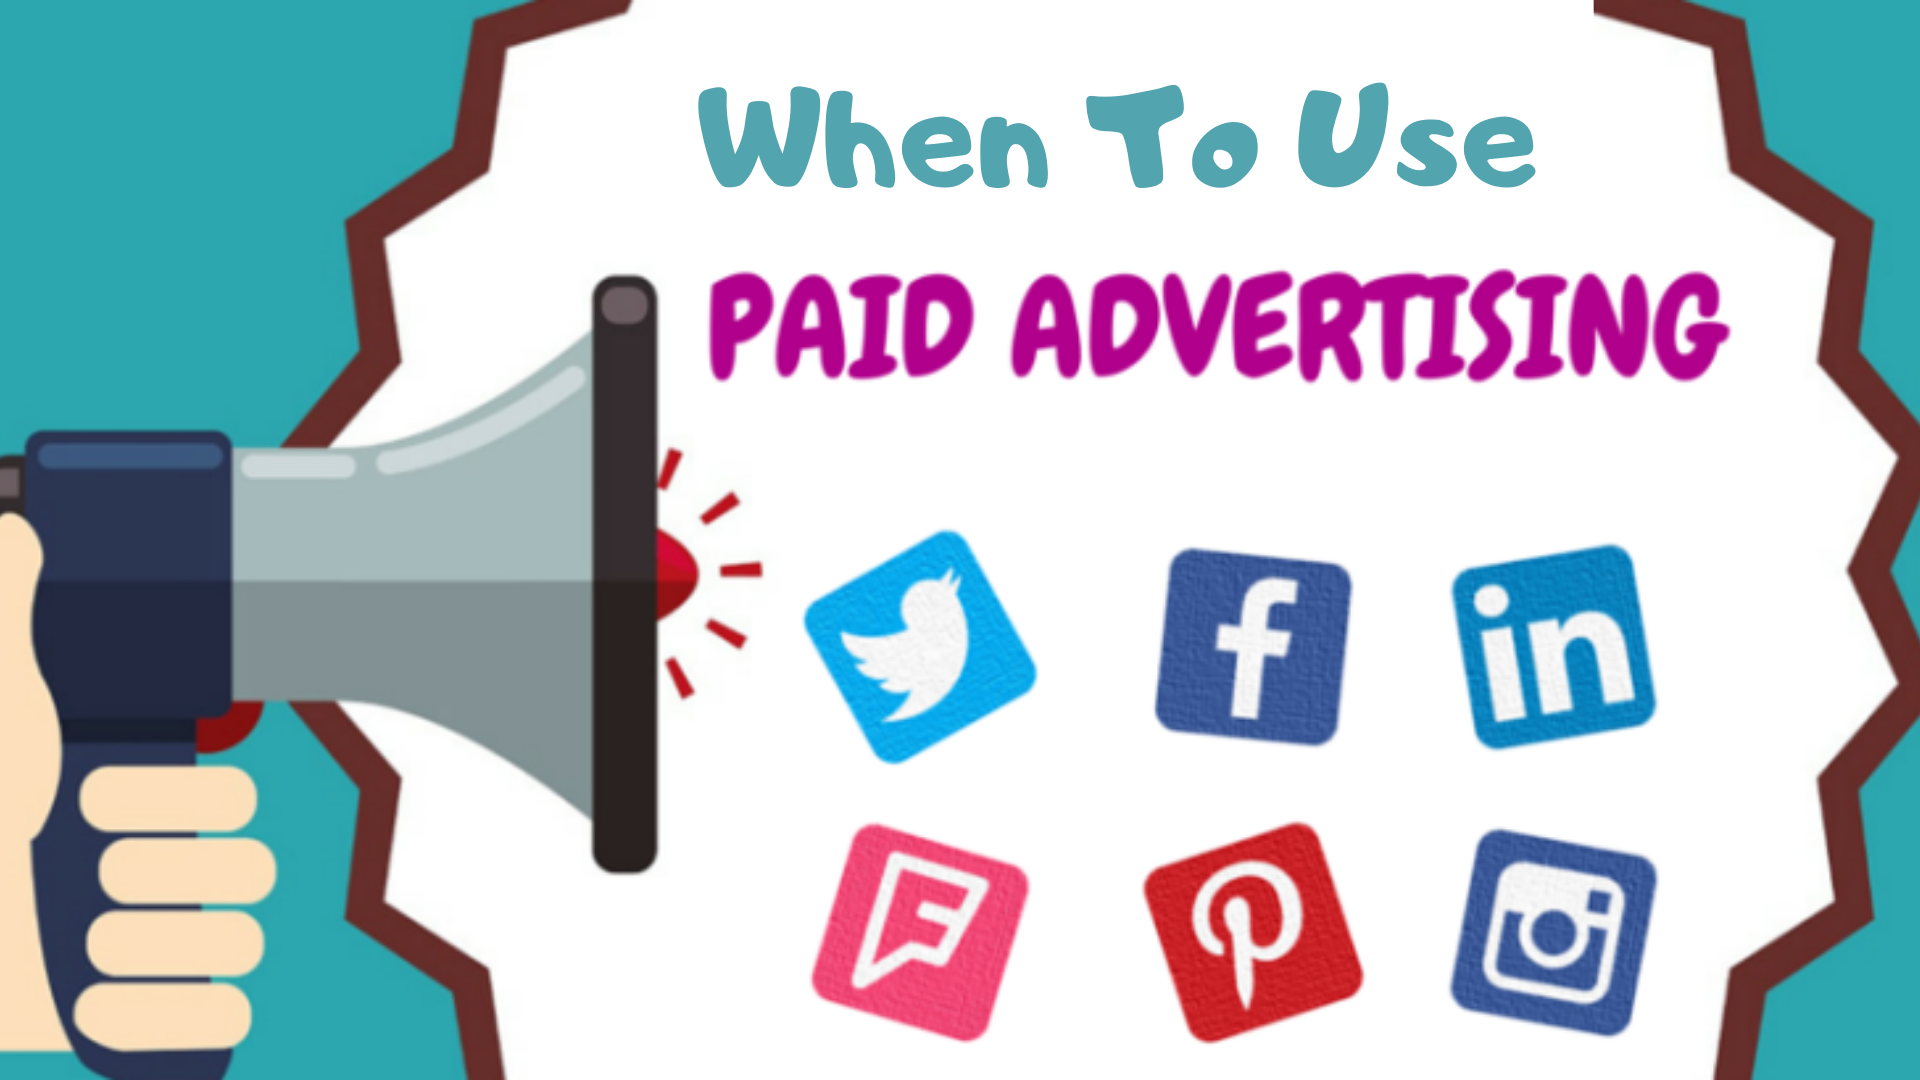 When To Use Paid Social Media?